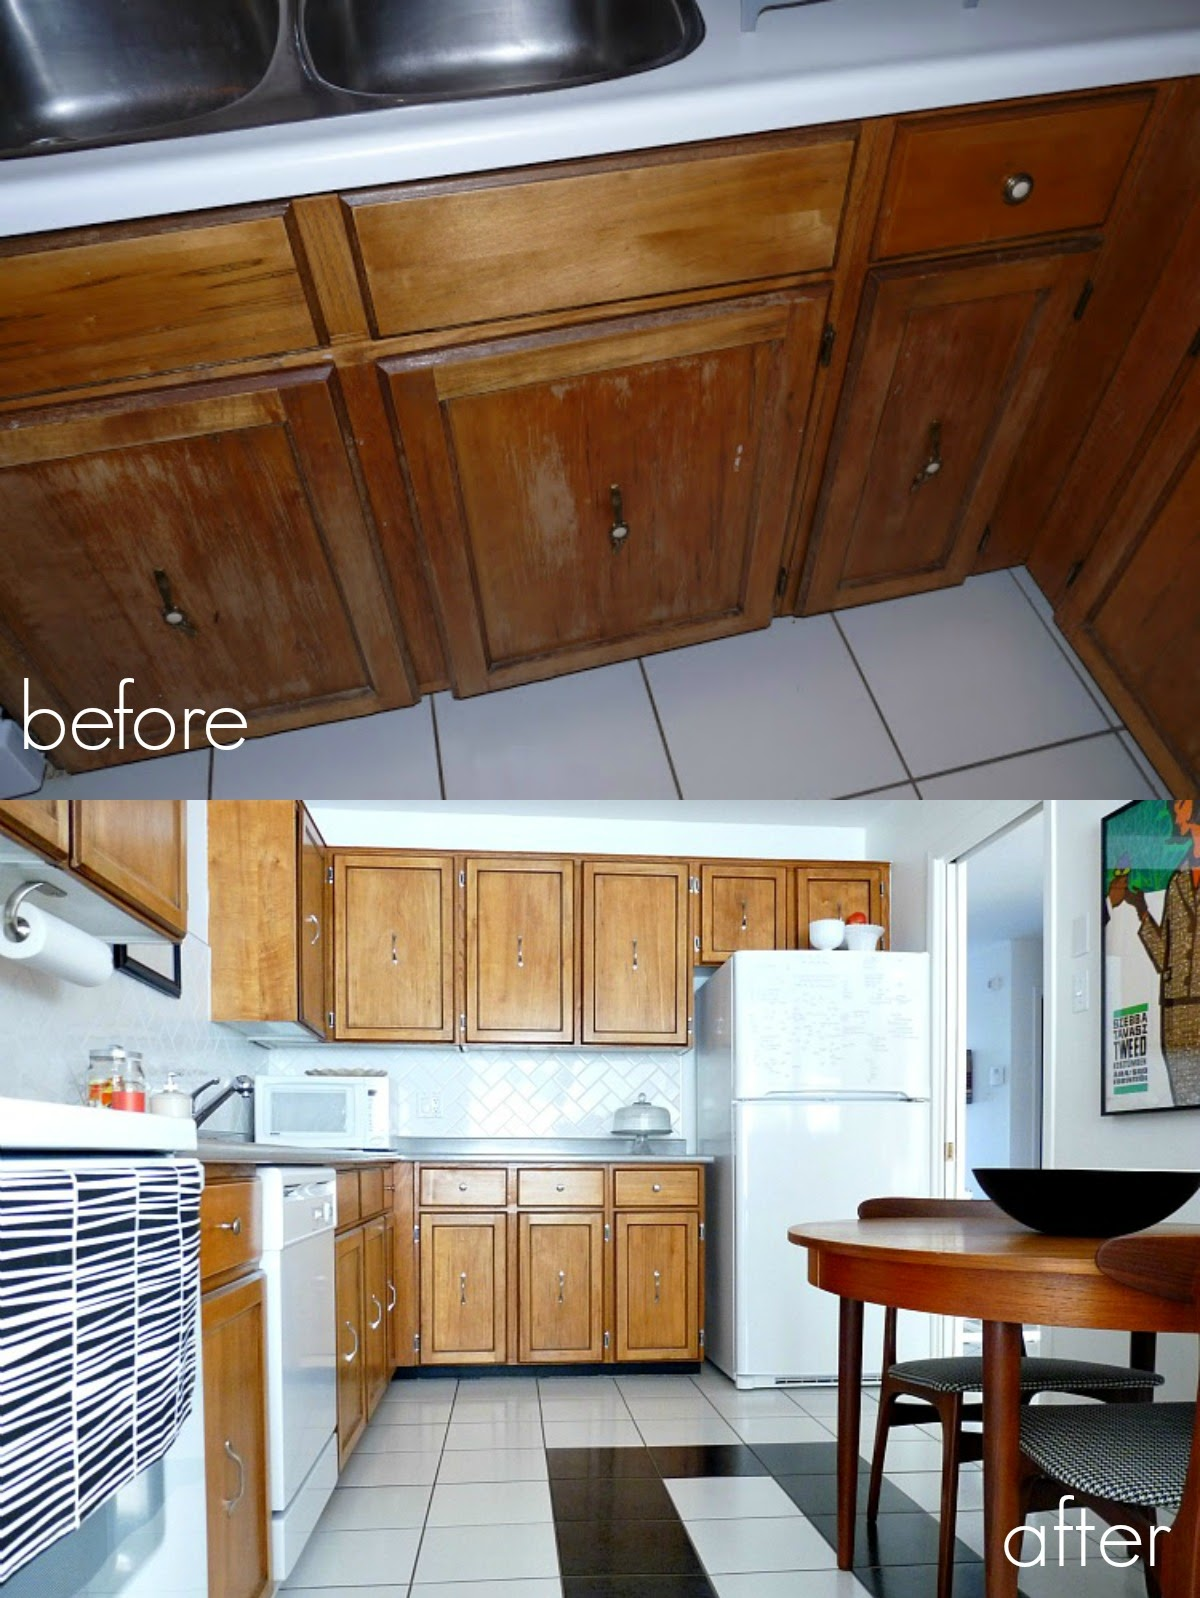 How To Refinish Kitchen Cabinets Without Stripping Desk Cabinet Refinishing 101 Latex Paint Vs Stain Rust